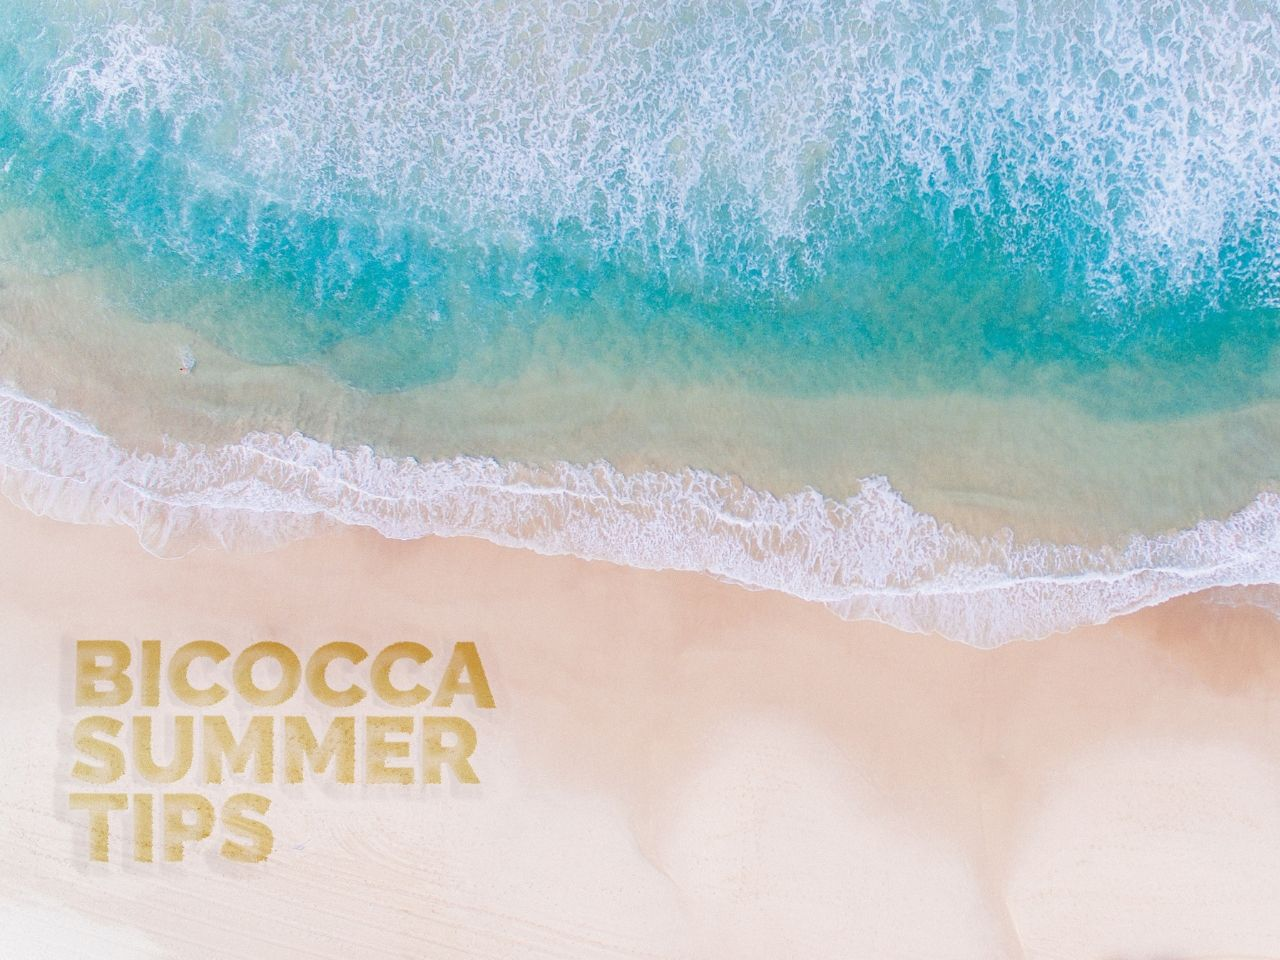 Bicocca Summer Tips